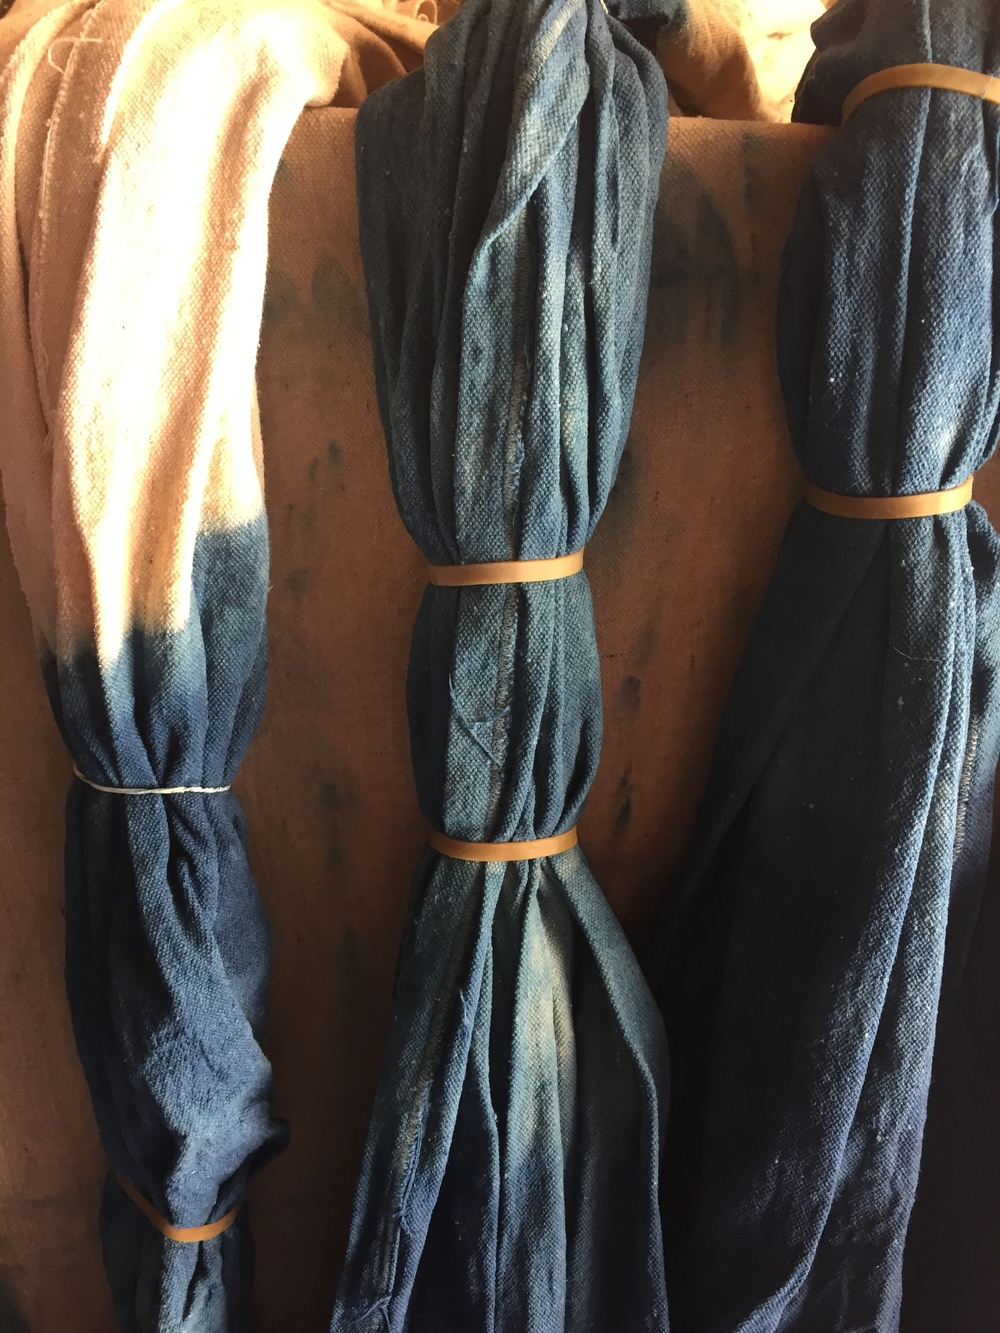 INDIGO DYED CURTAINS | DEN MOTHER BLOG